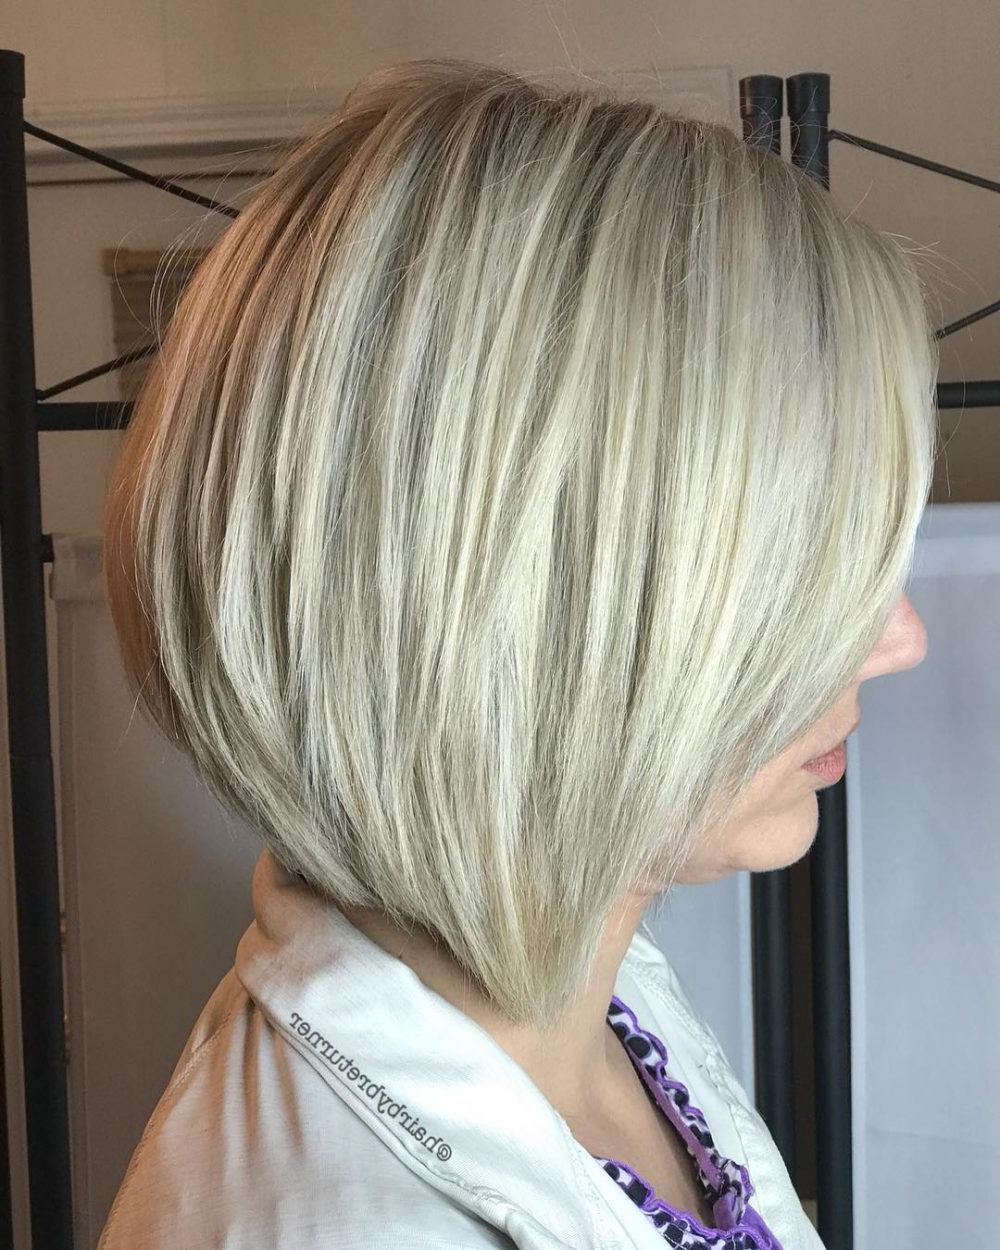 42 Sexiest Short Hairstyles For Women Over 40 In 2019 Within Most Up To Date Undercut Medium Hairstyles For Women (View 7 of 20)